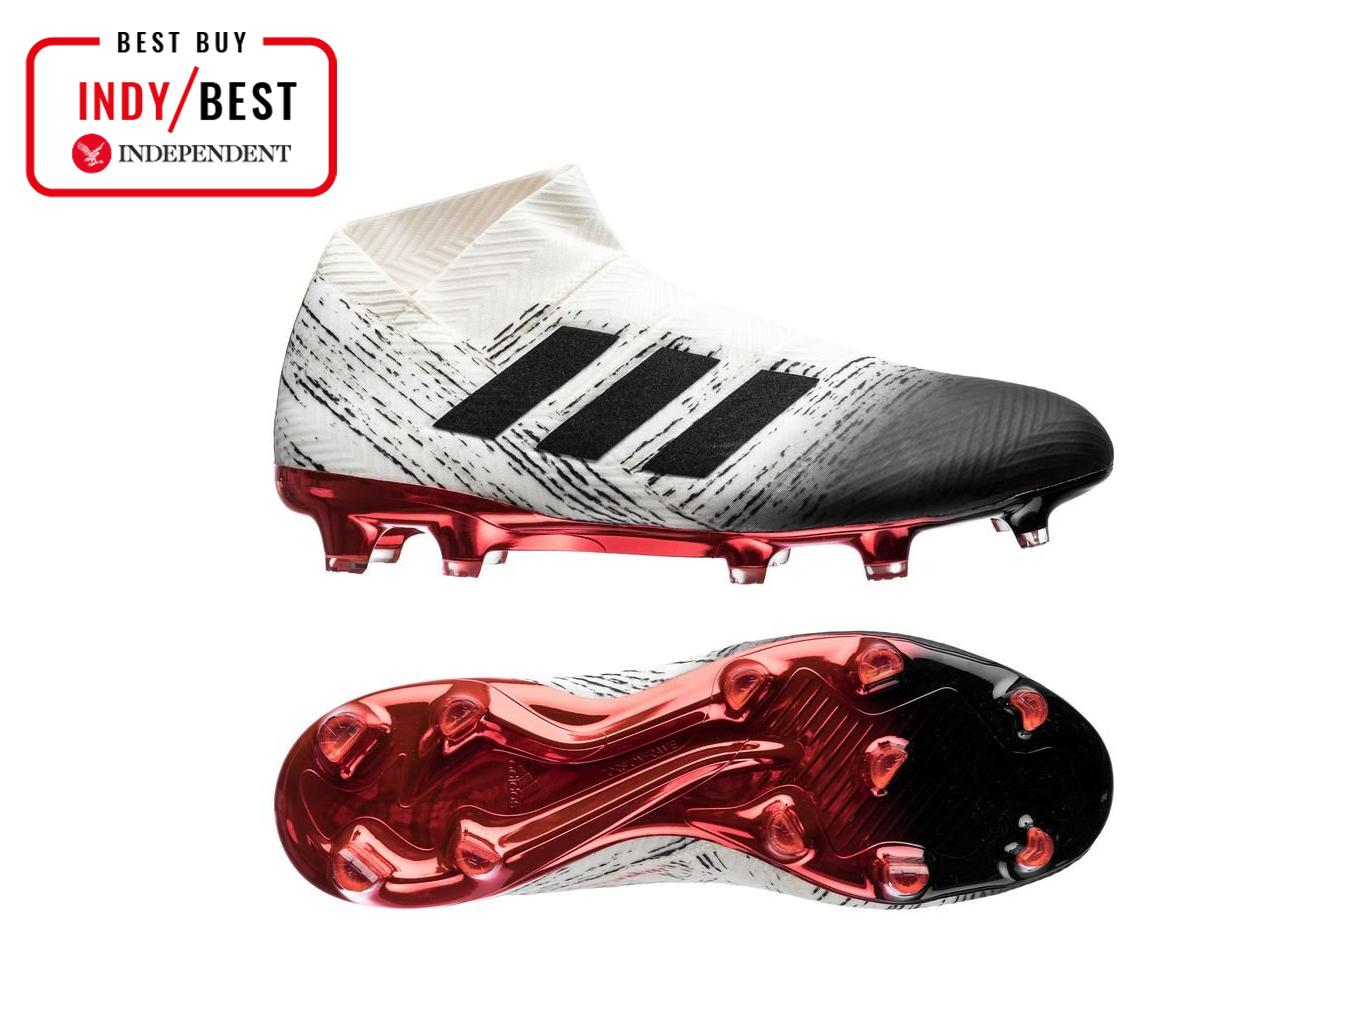 c3b061744caa 10 best men's football boots | The Independent